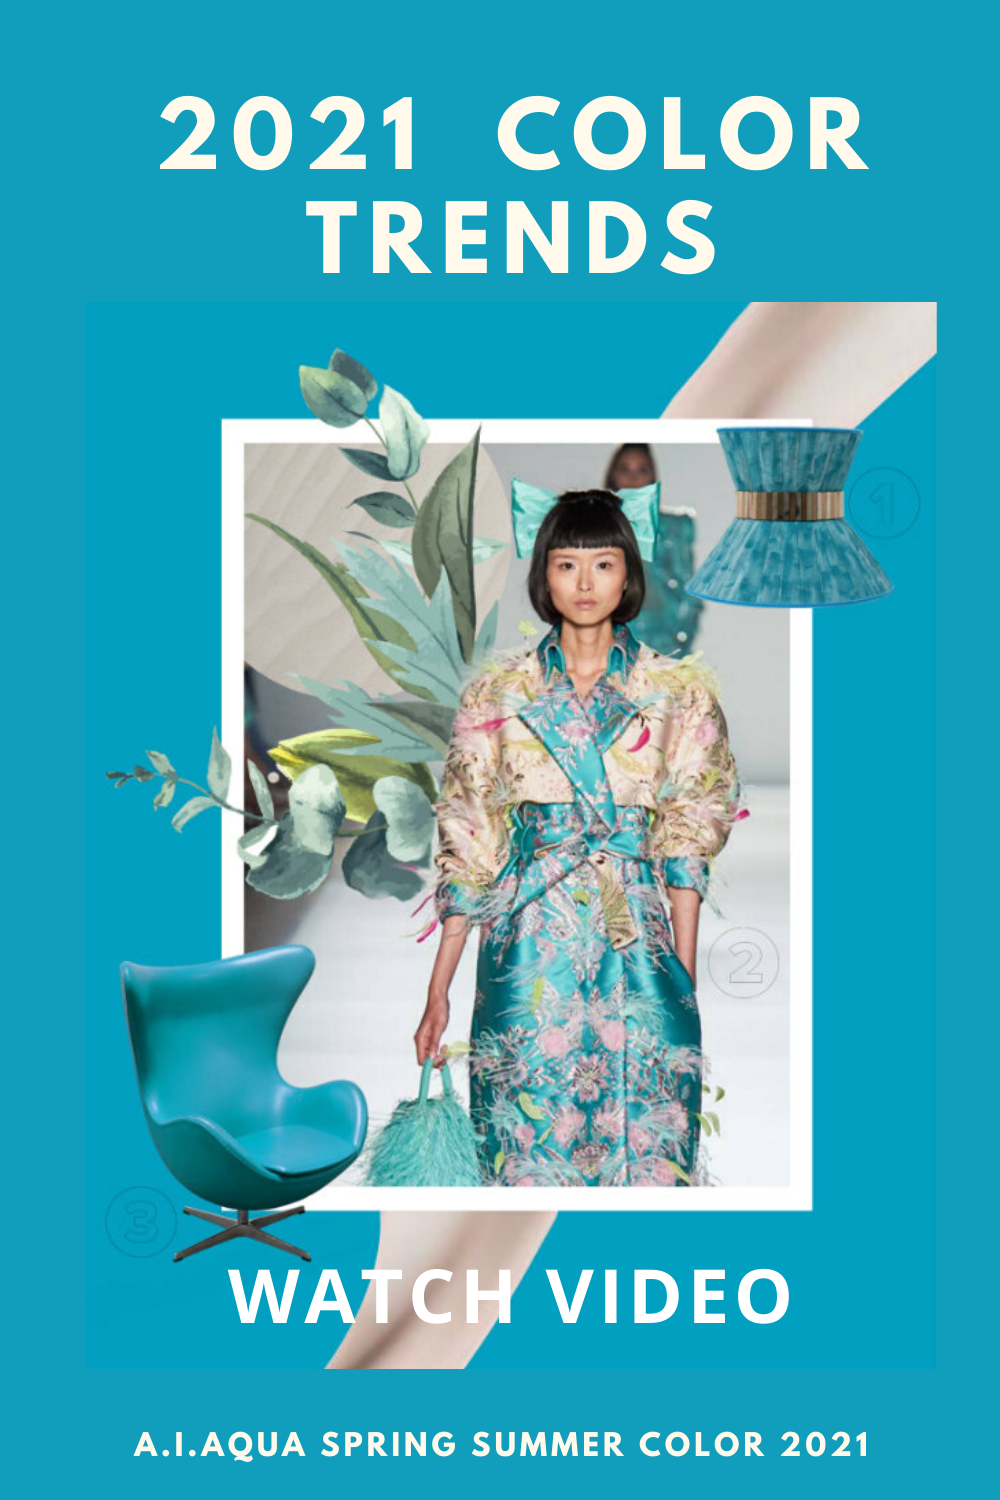 a i aqua the spring summer color trend 2021 color trends on 2021 color trends for interiors id=54814